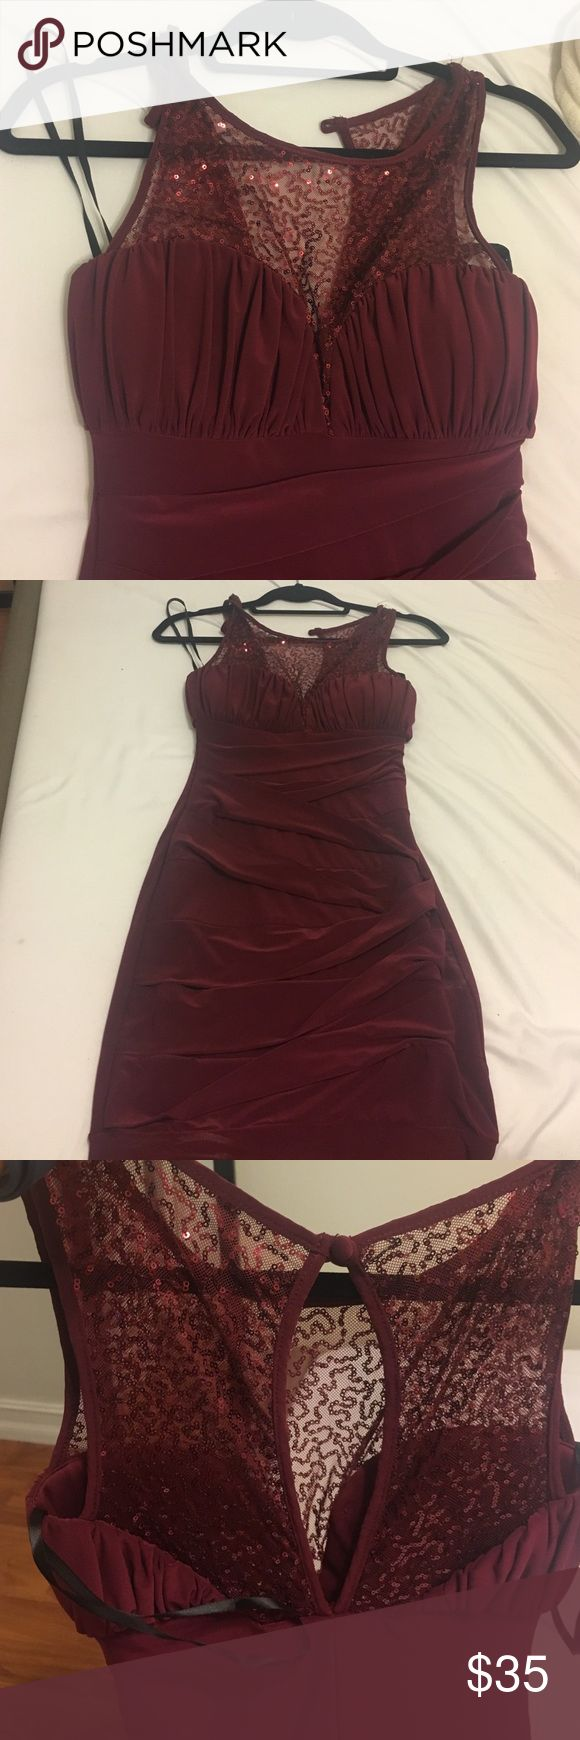 Windsor maroon cocktail dress Never worn. A couple of deodorant spots from removing the dress after trying it on sequin illusion detail. Ruched with a ton of stretch WINDSOR Dresses